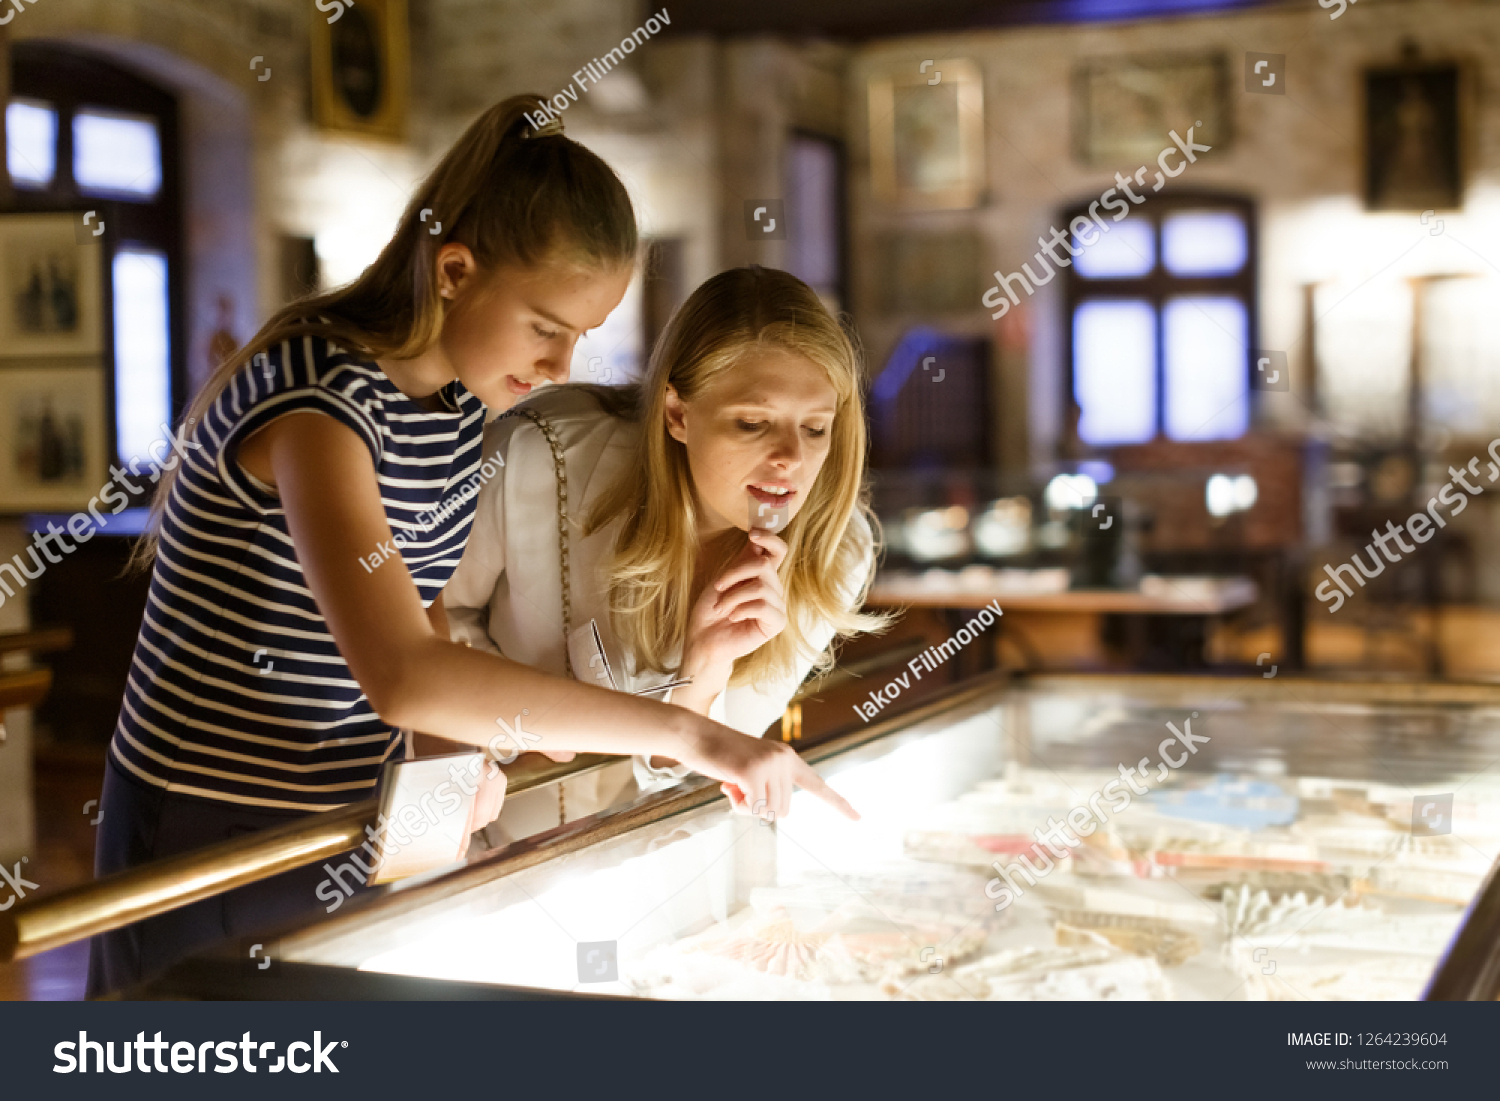 Girl with woman looking with interest at art objects under glass in museum, using guidebook #1264239604